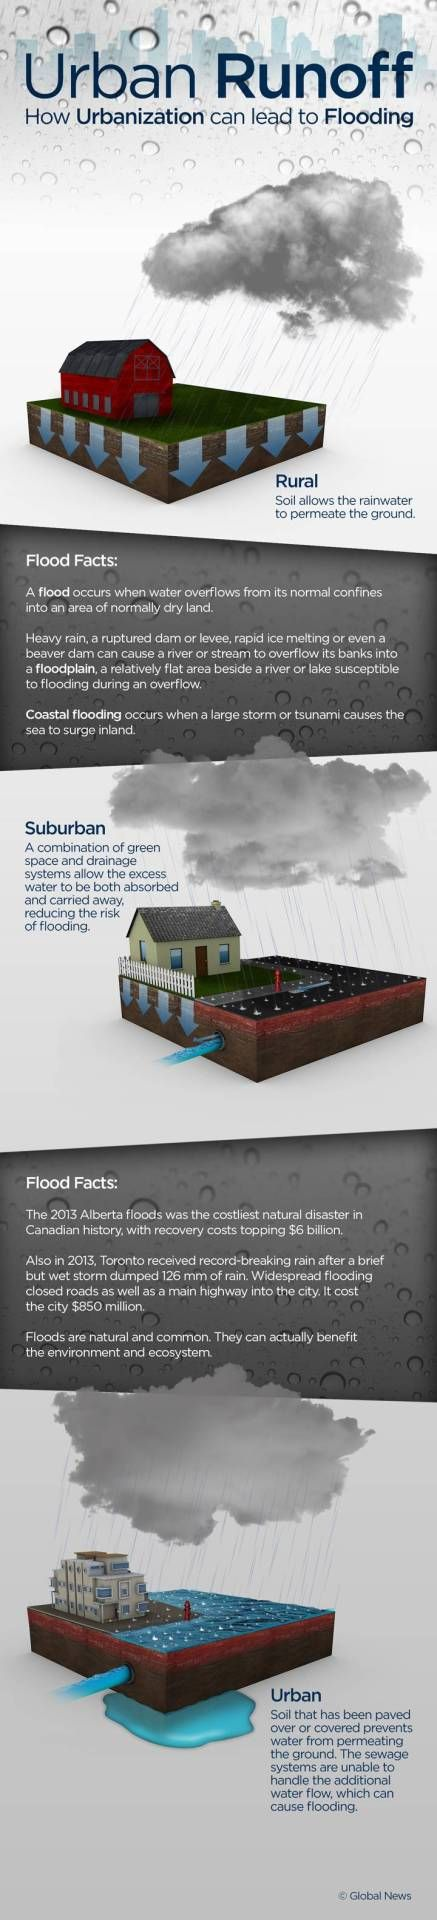 How urbanization can lead to flooding.